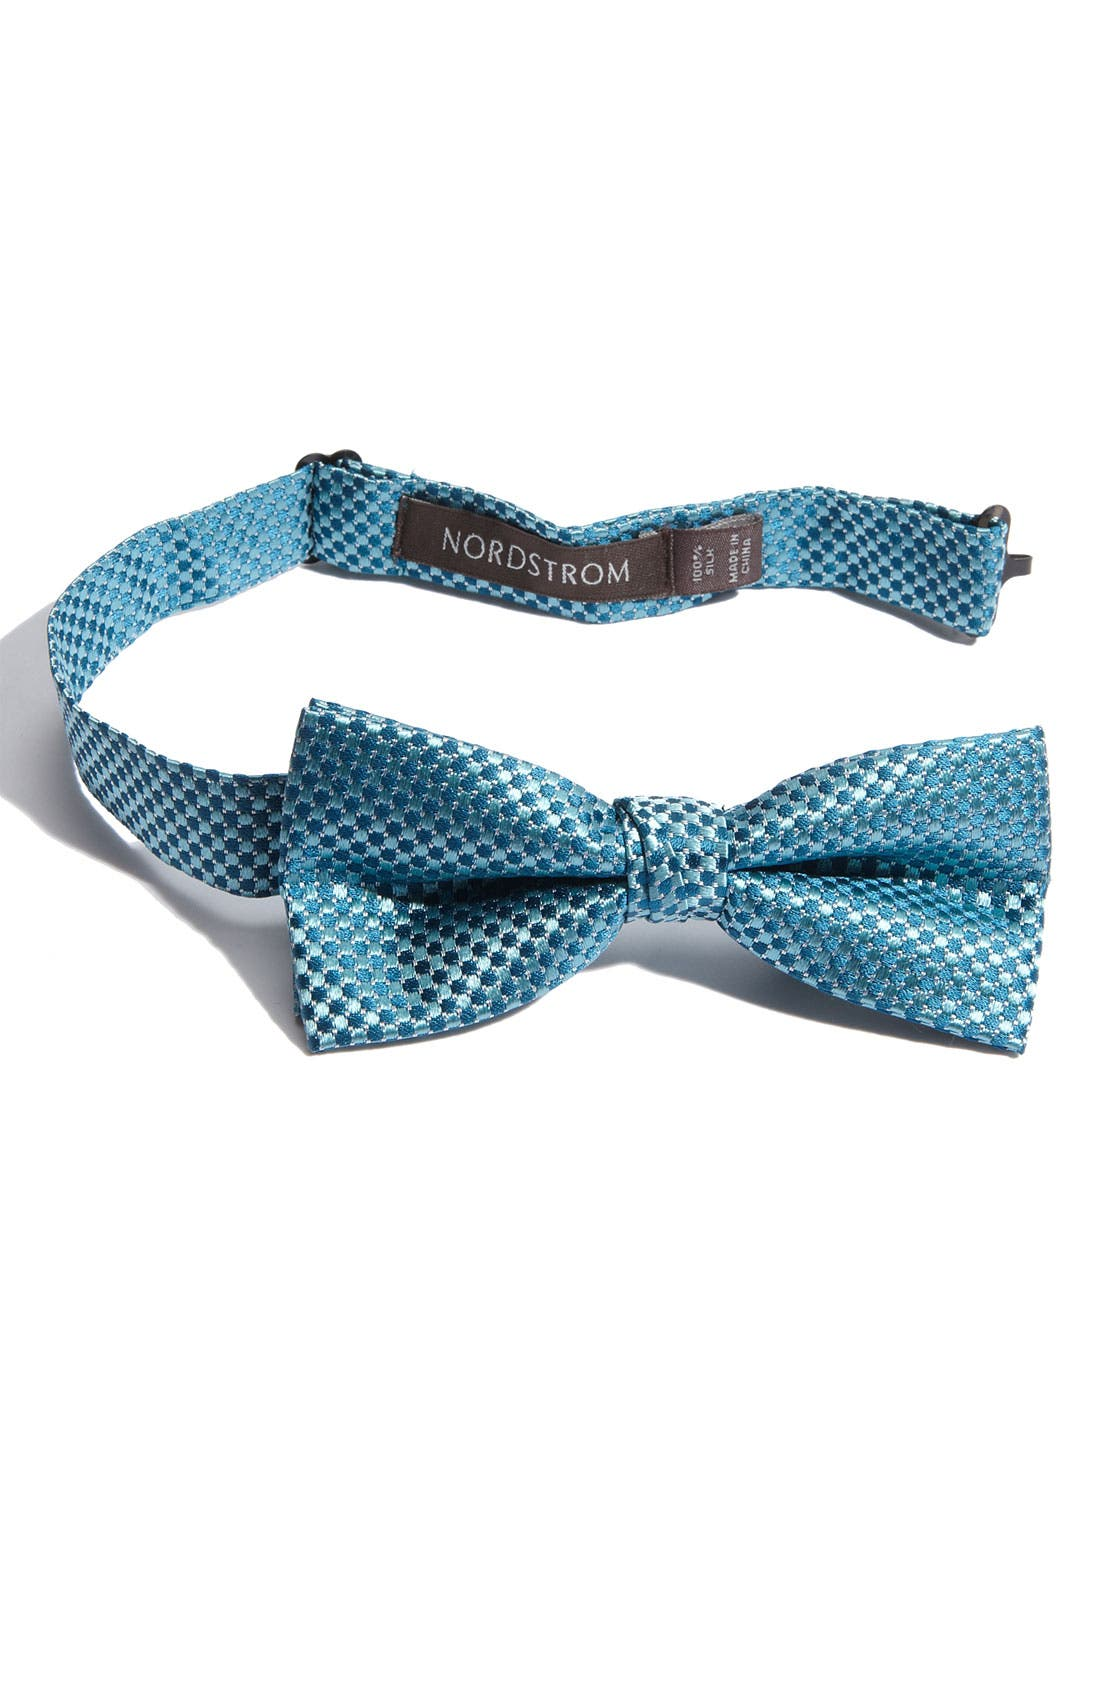 Alternate Image 1 Selected - Nordstrom Bow Tie (Boys)